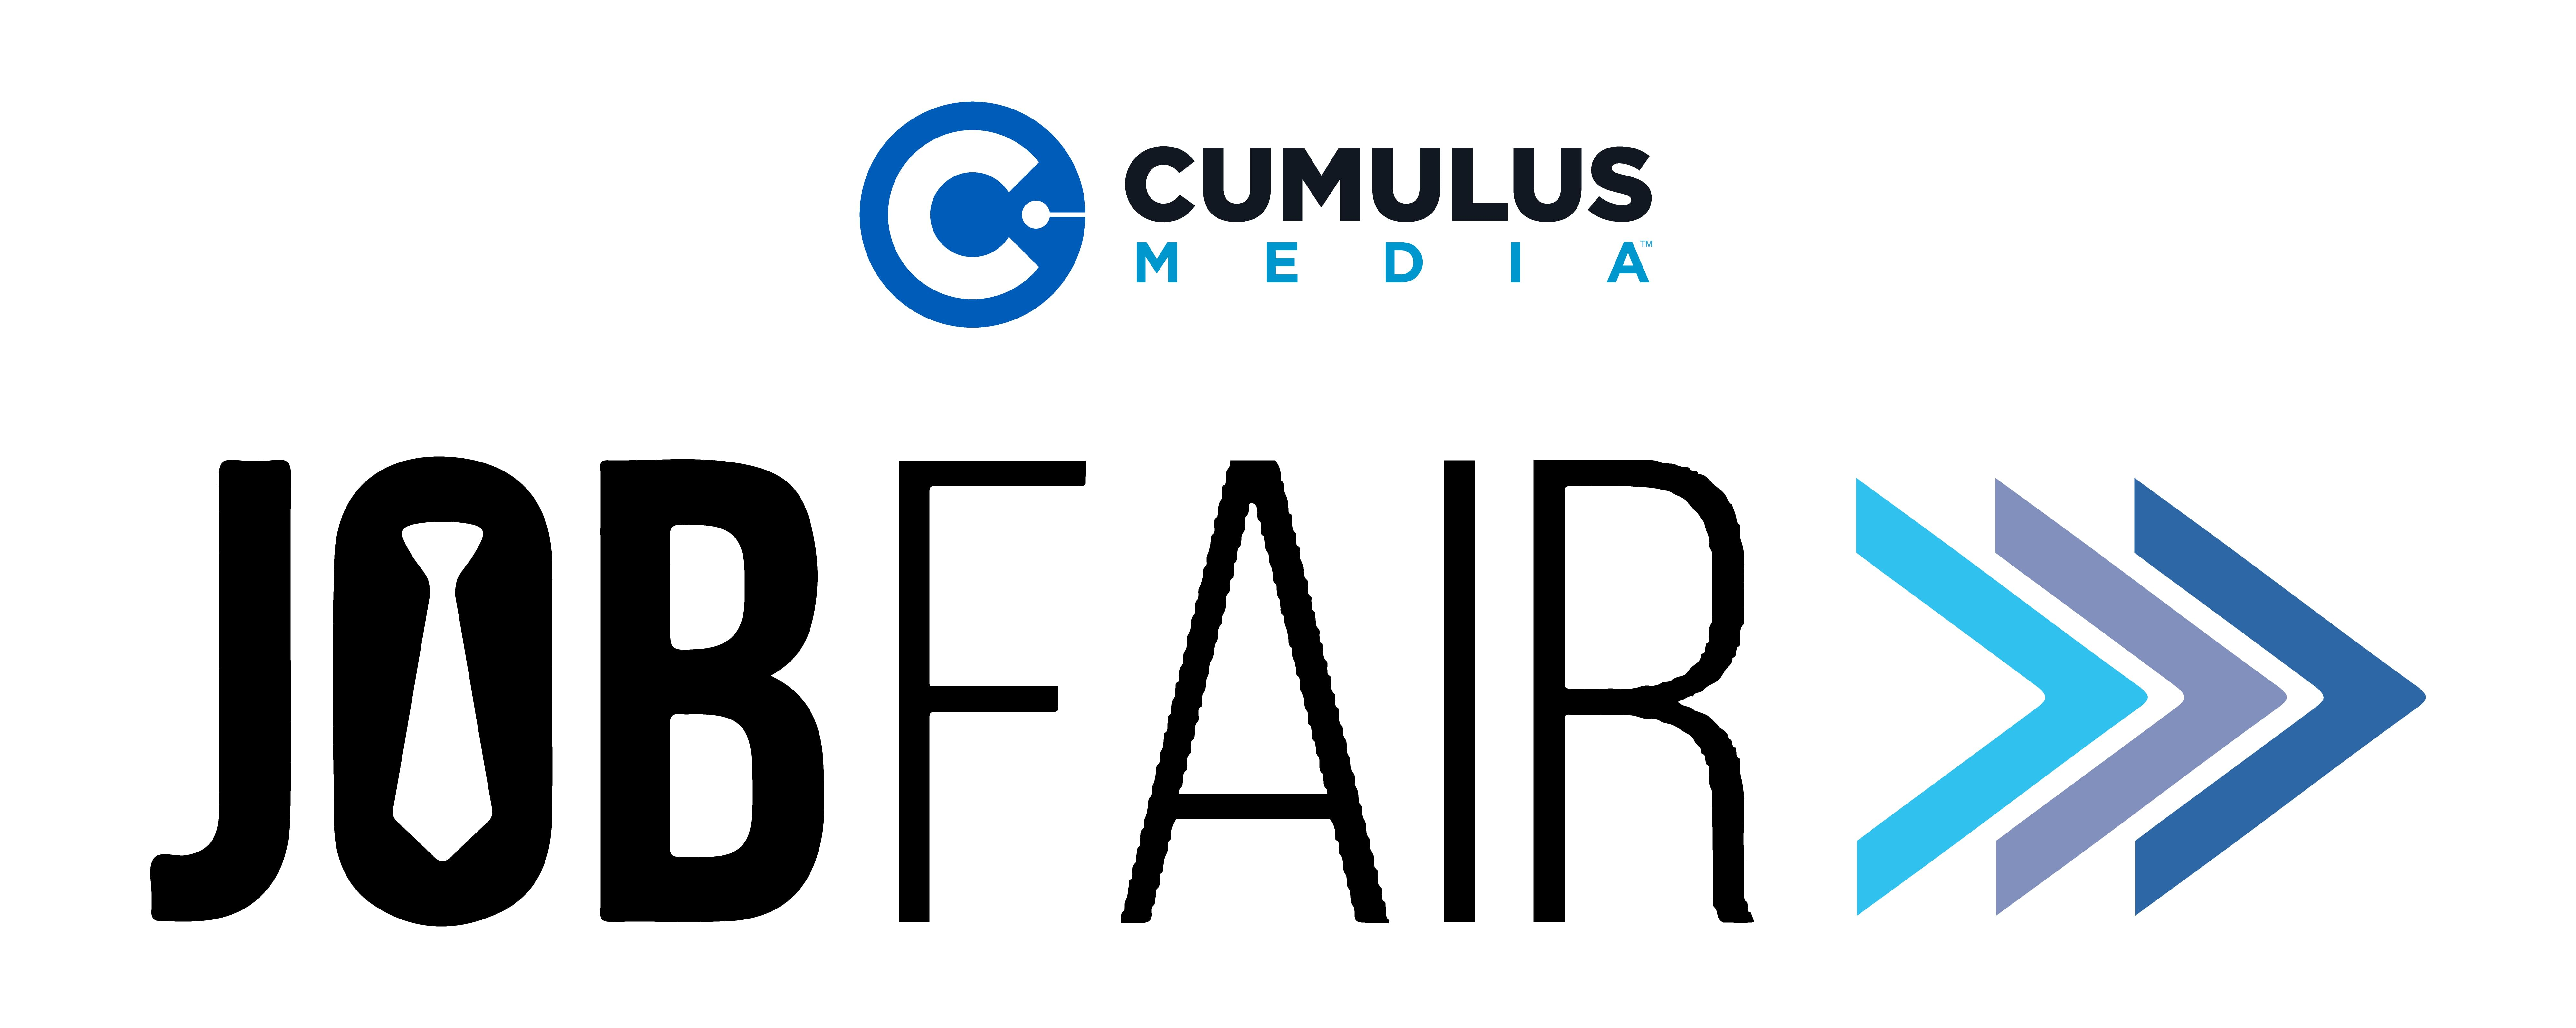 Cumulus Media Job Fair | May 21st